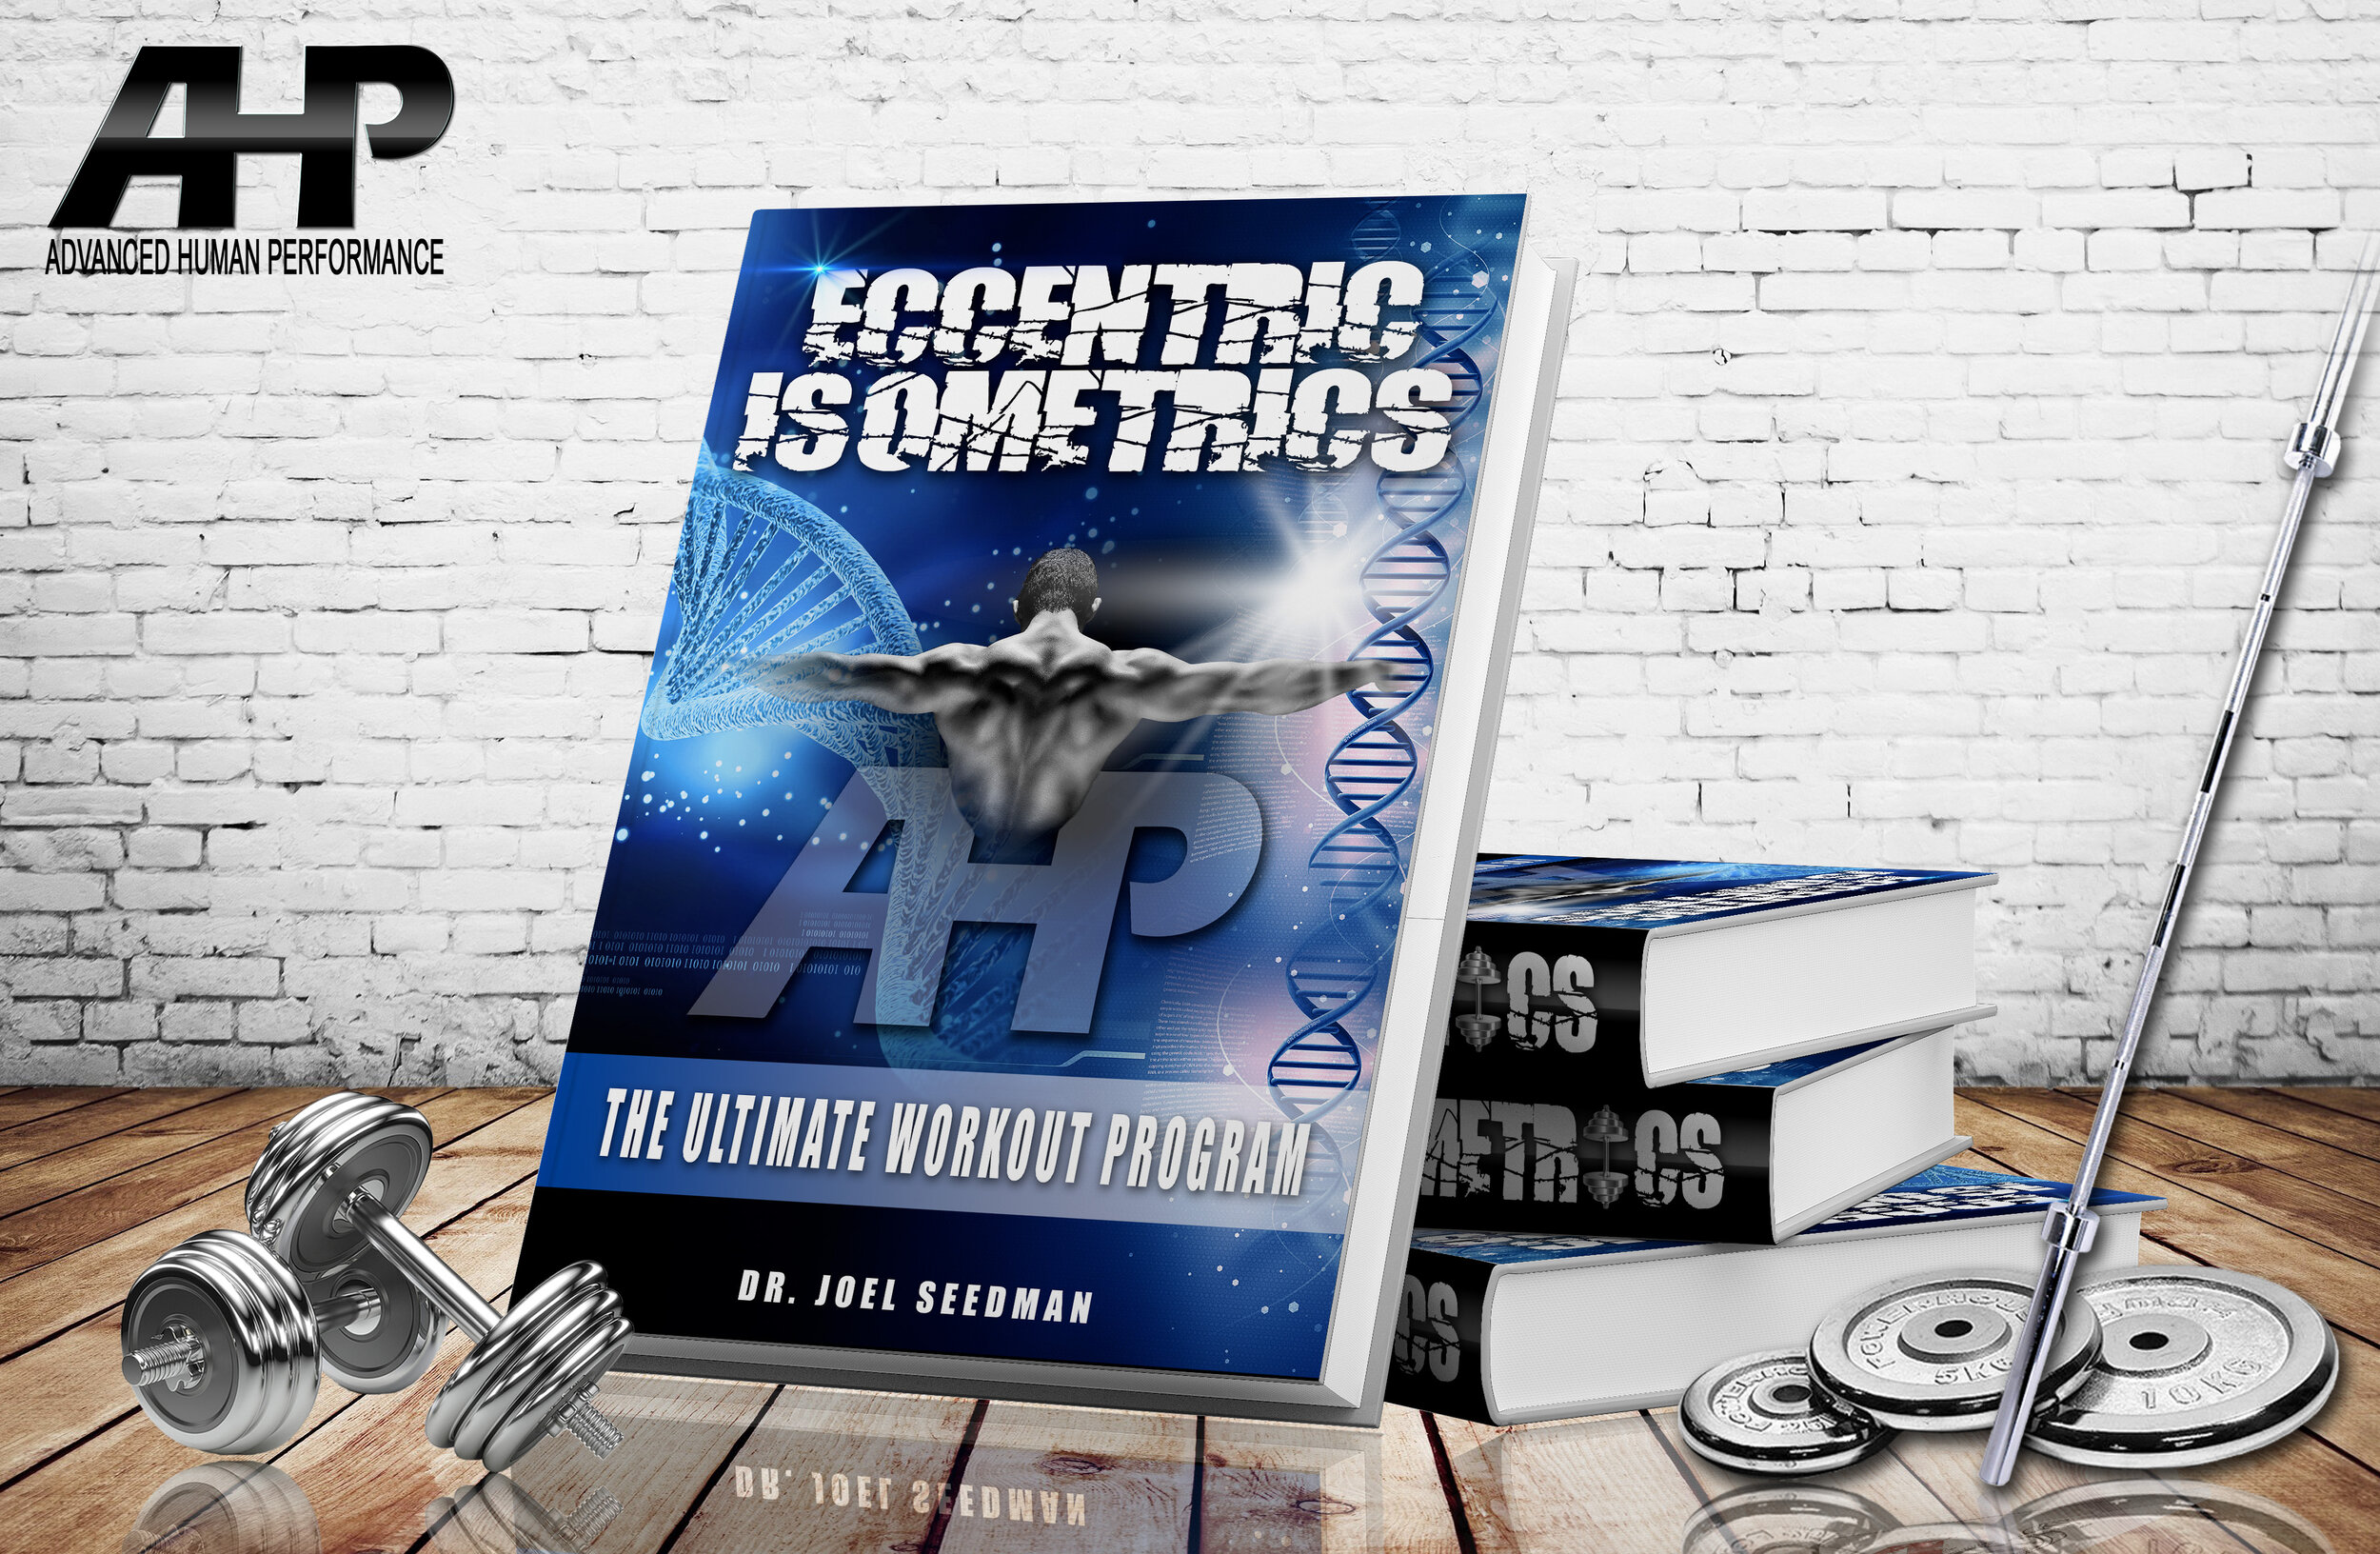 Eccentric Isometric Training Program Thumbnail (AHP).jpg